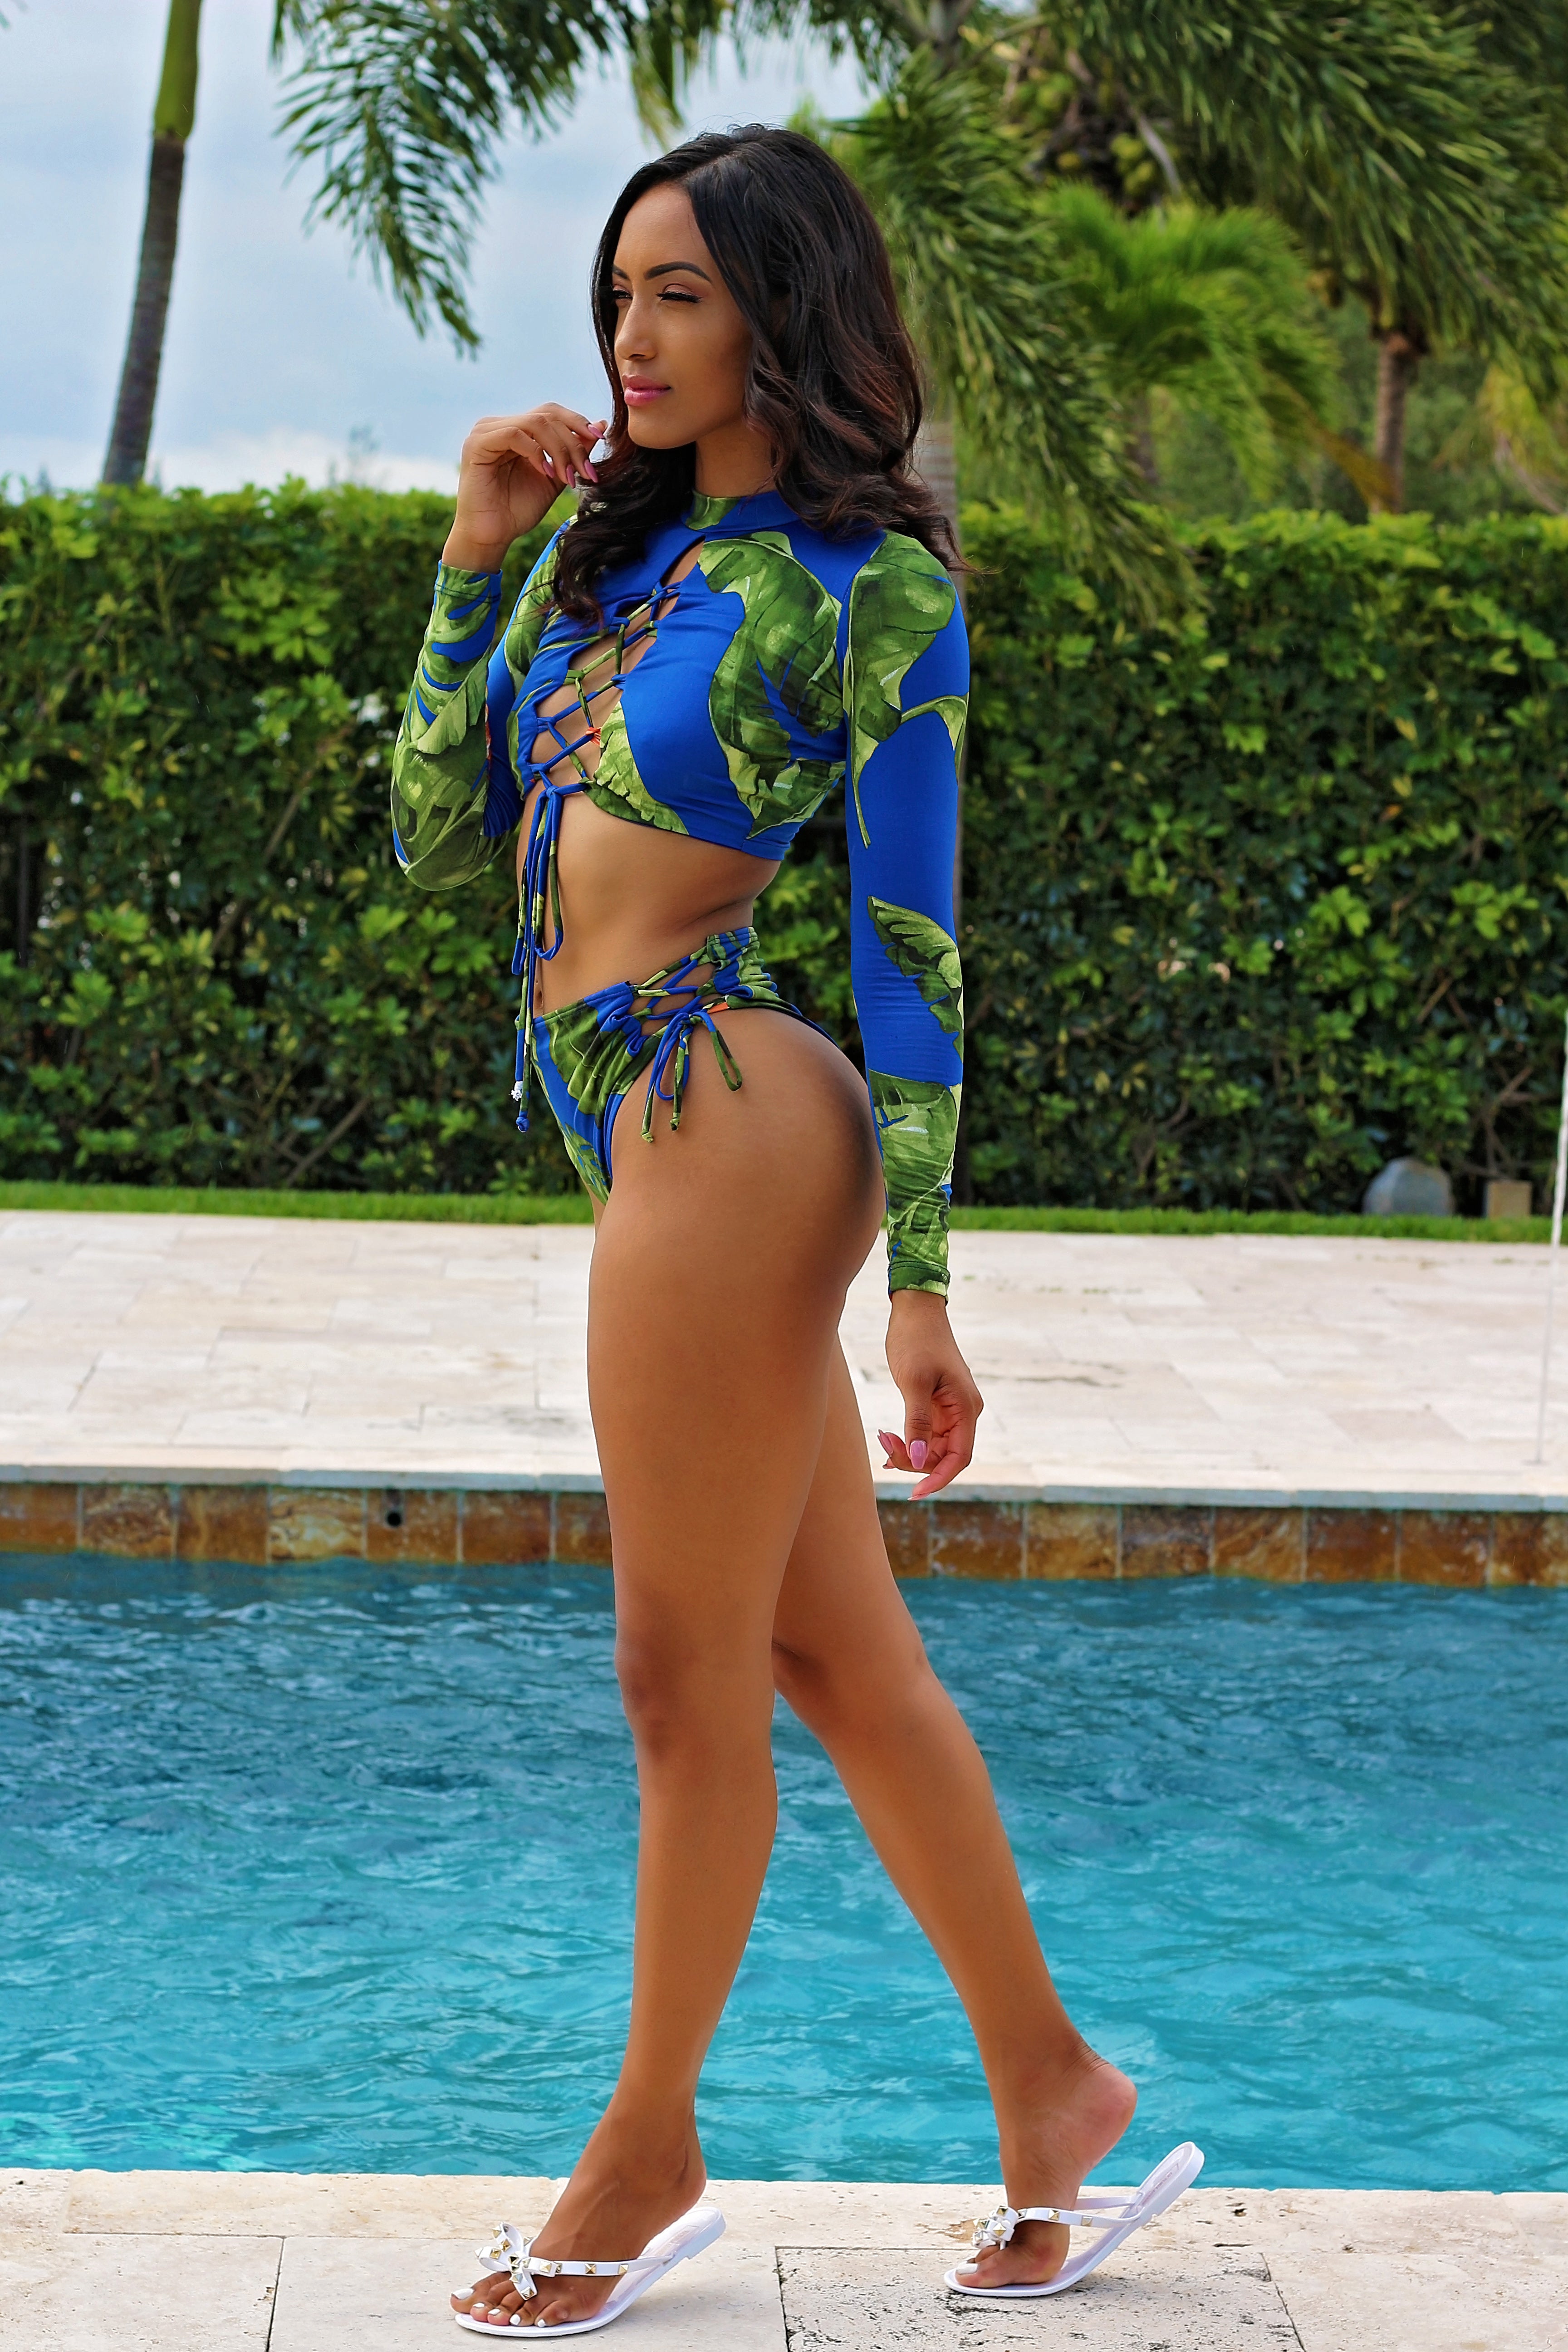 LaceLeaf Long Sleeve Floral Bikini - Royal/Multi - Semai House Of fashion